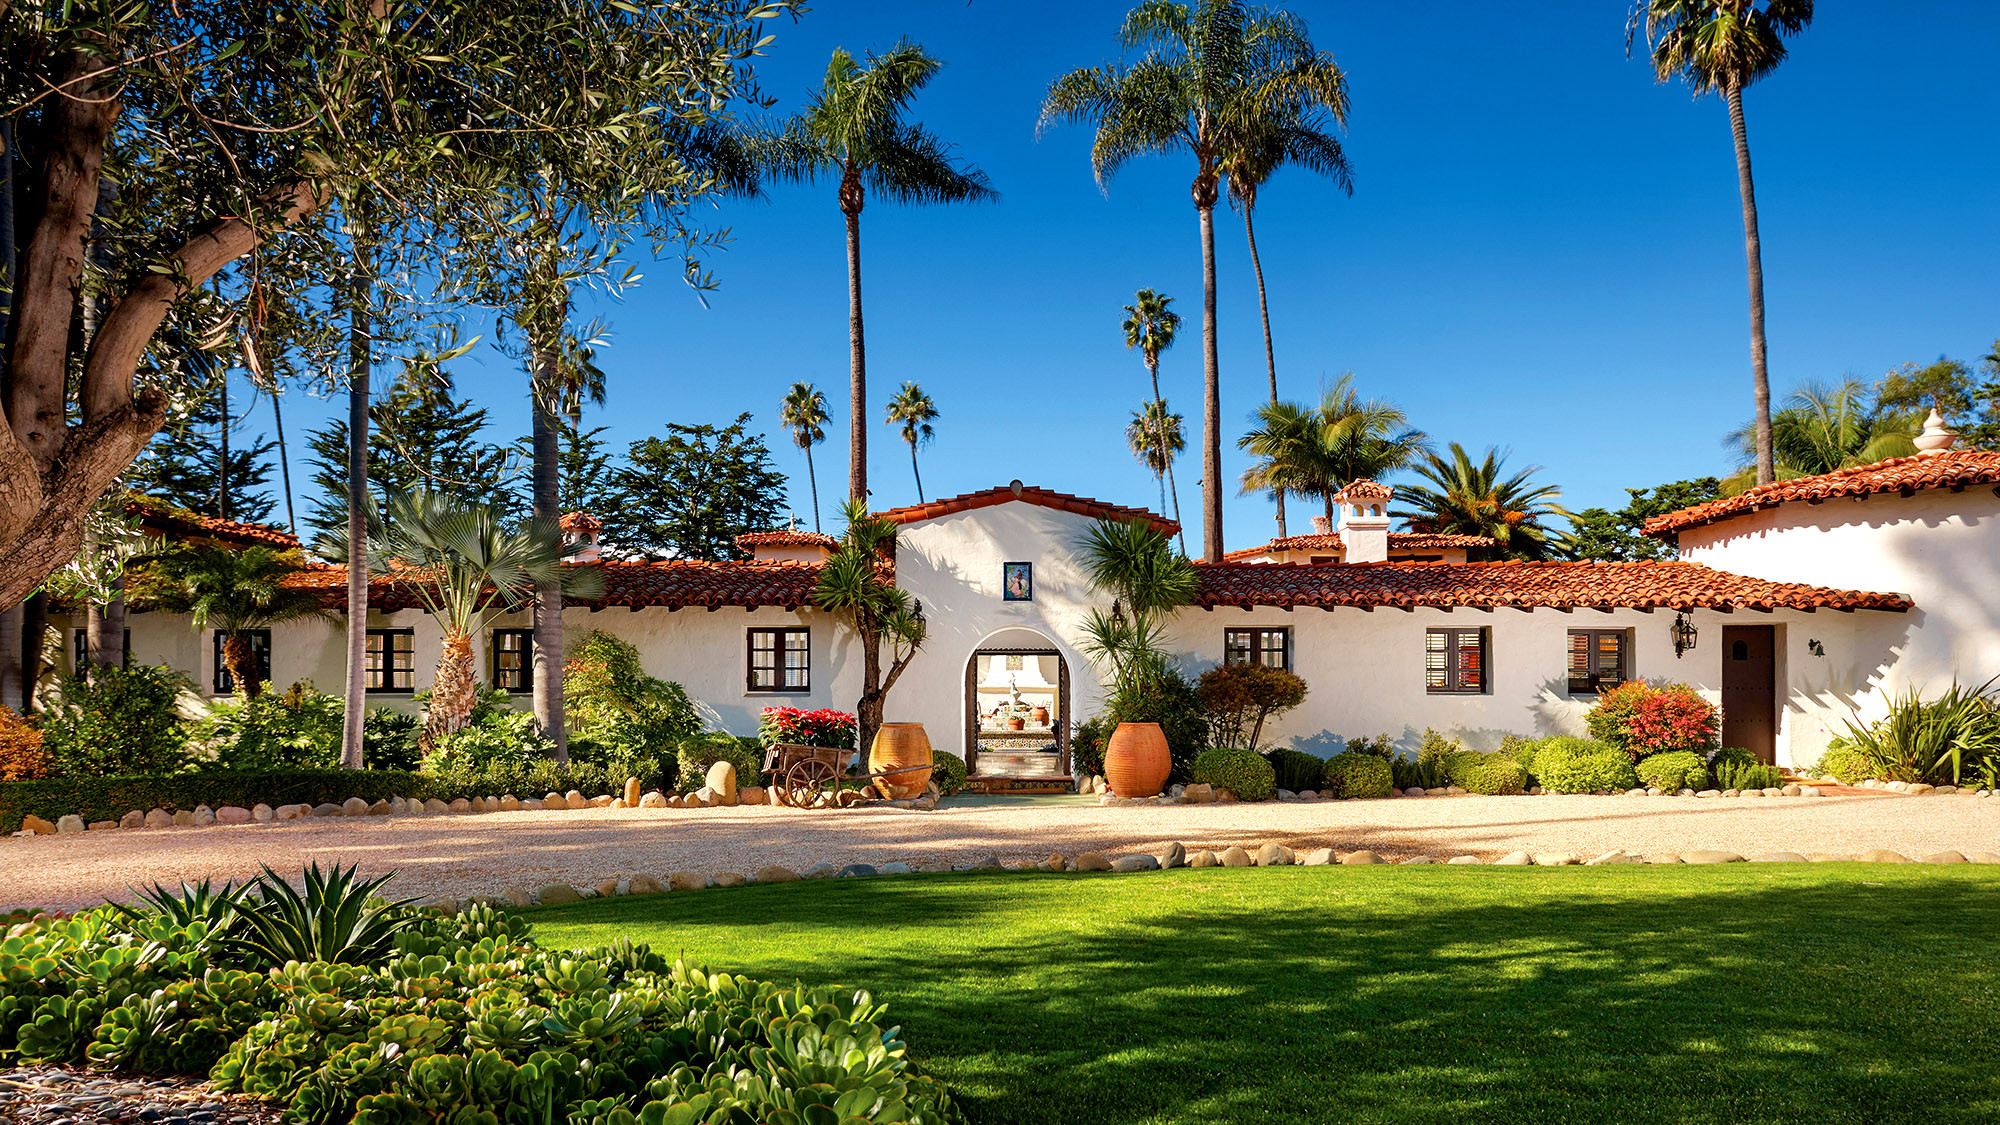 president nixon s western white house lists for sale at 75 president nixon s western white house lists for sale at 75 million la times